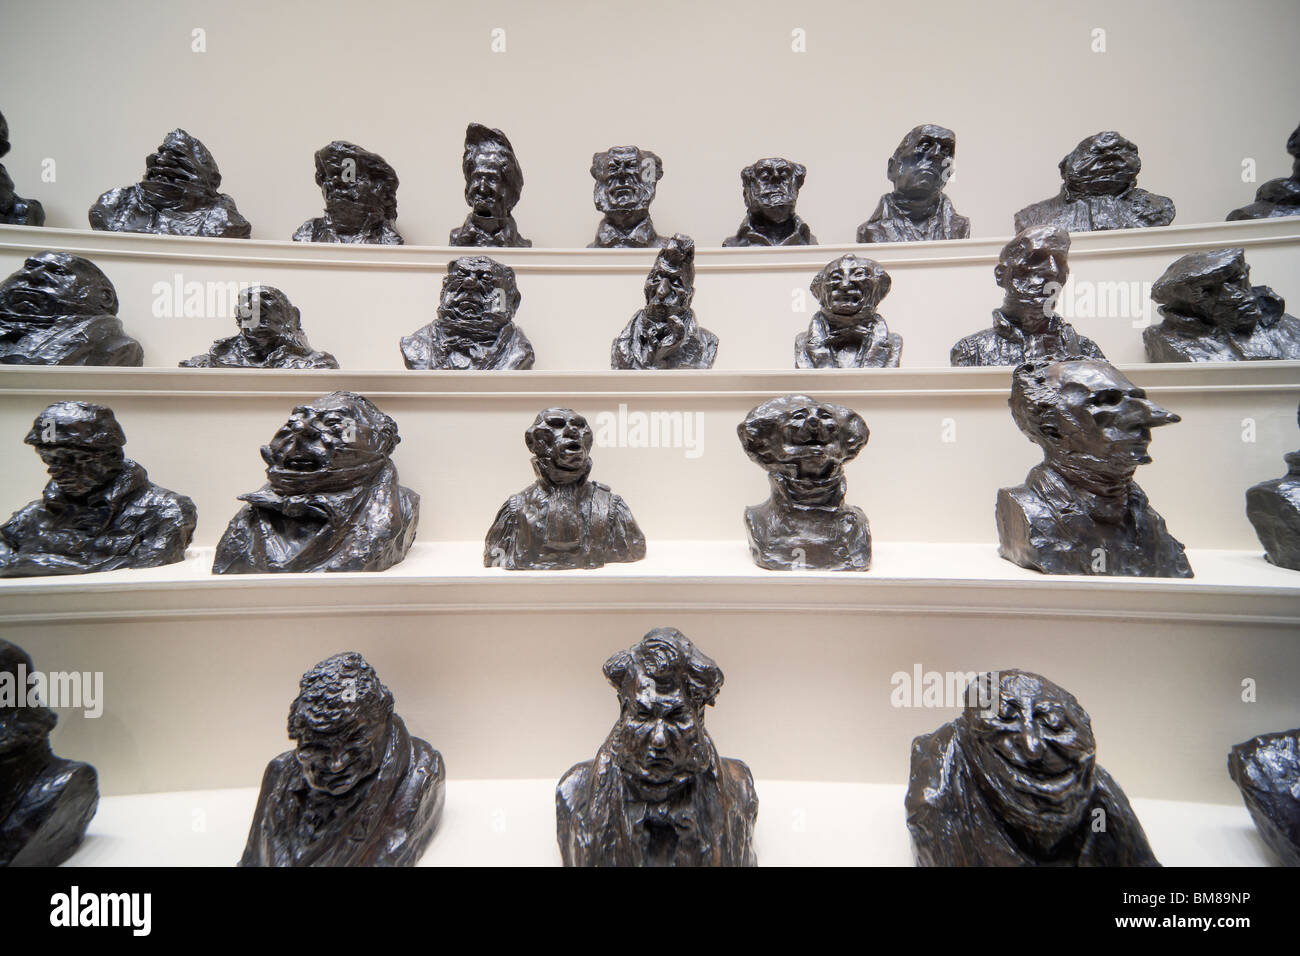 Washington DC National Gallery of Art. Display of a series of bronze casts of caricatures of politicians by Honoré - Stock Image